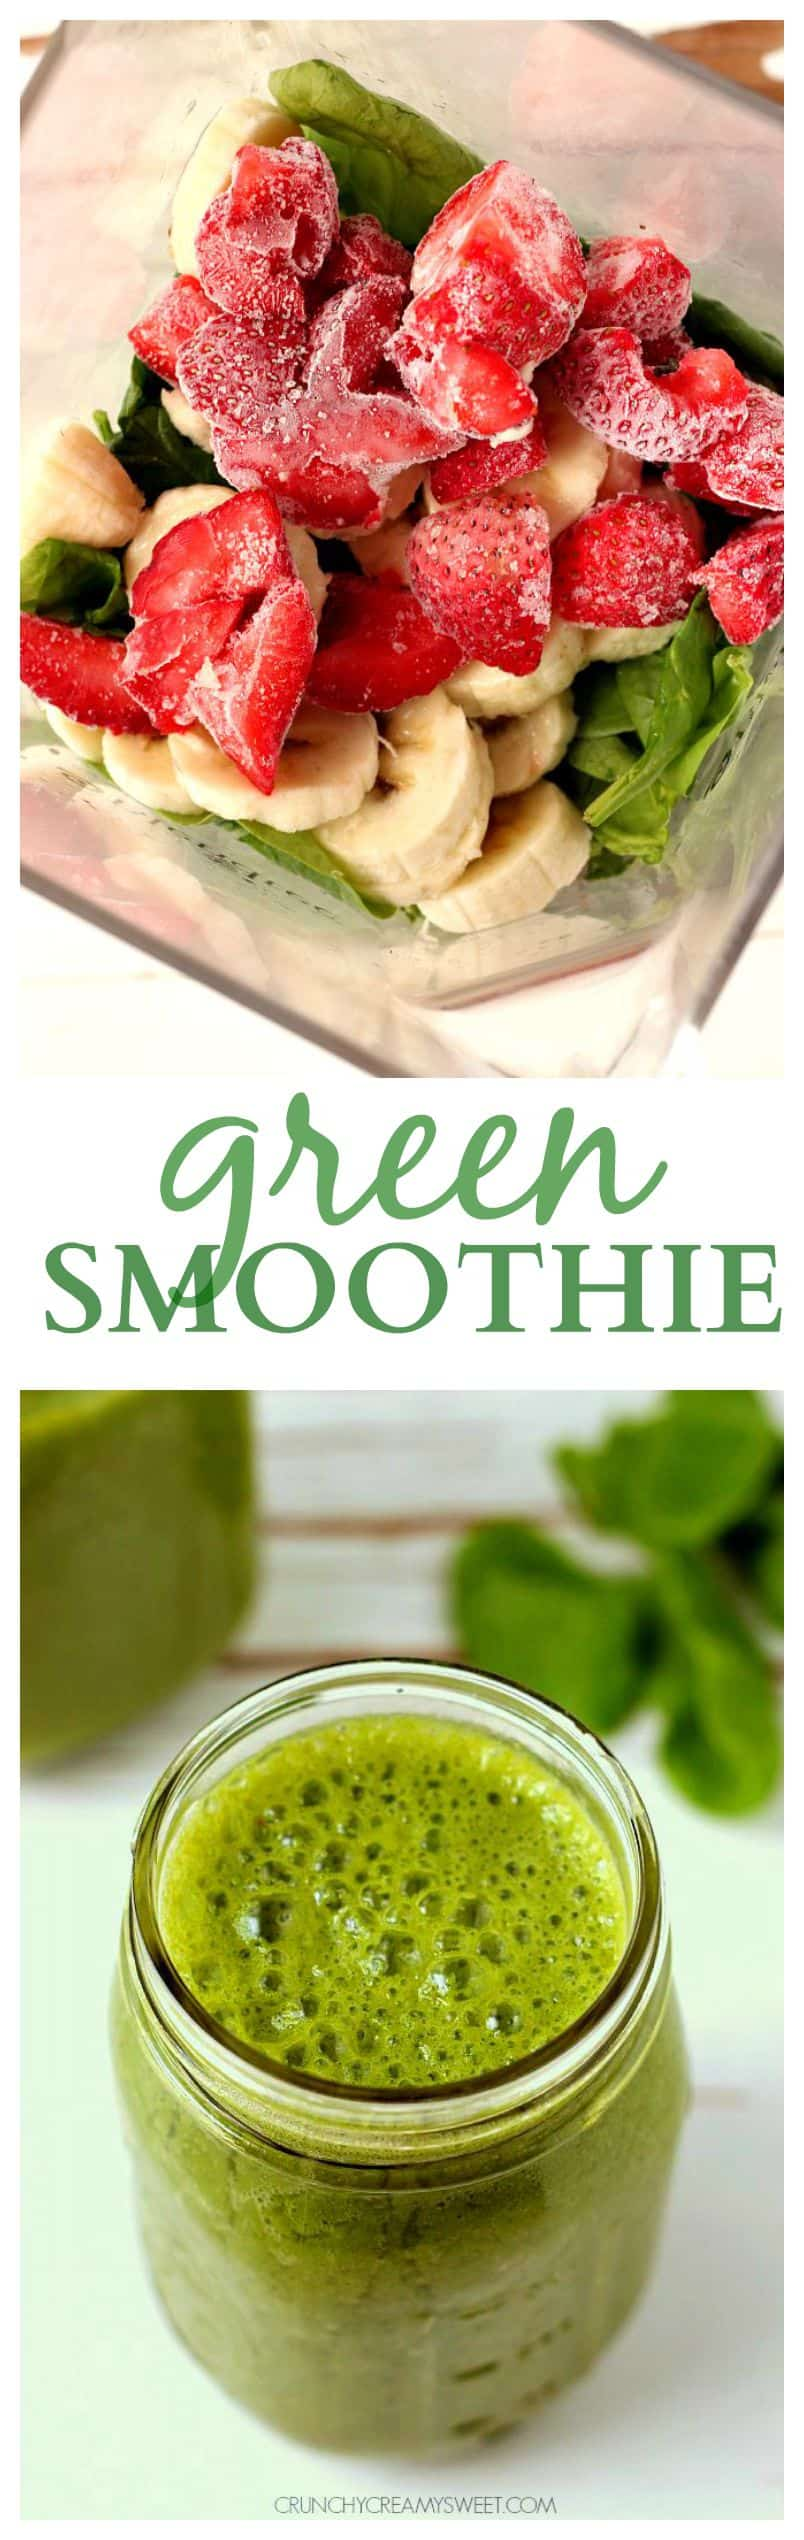 My favorite green smoothie 7 Green Smoothie